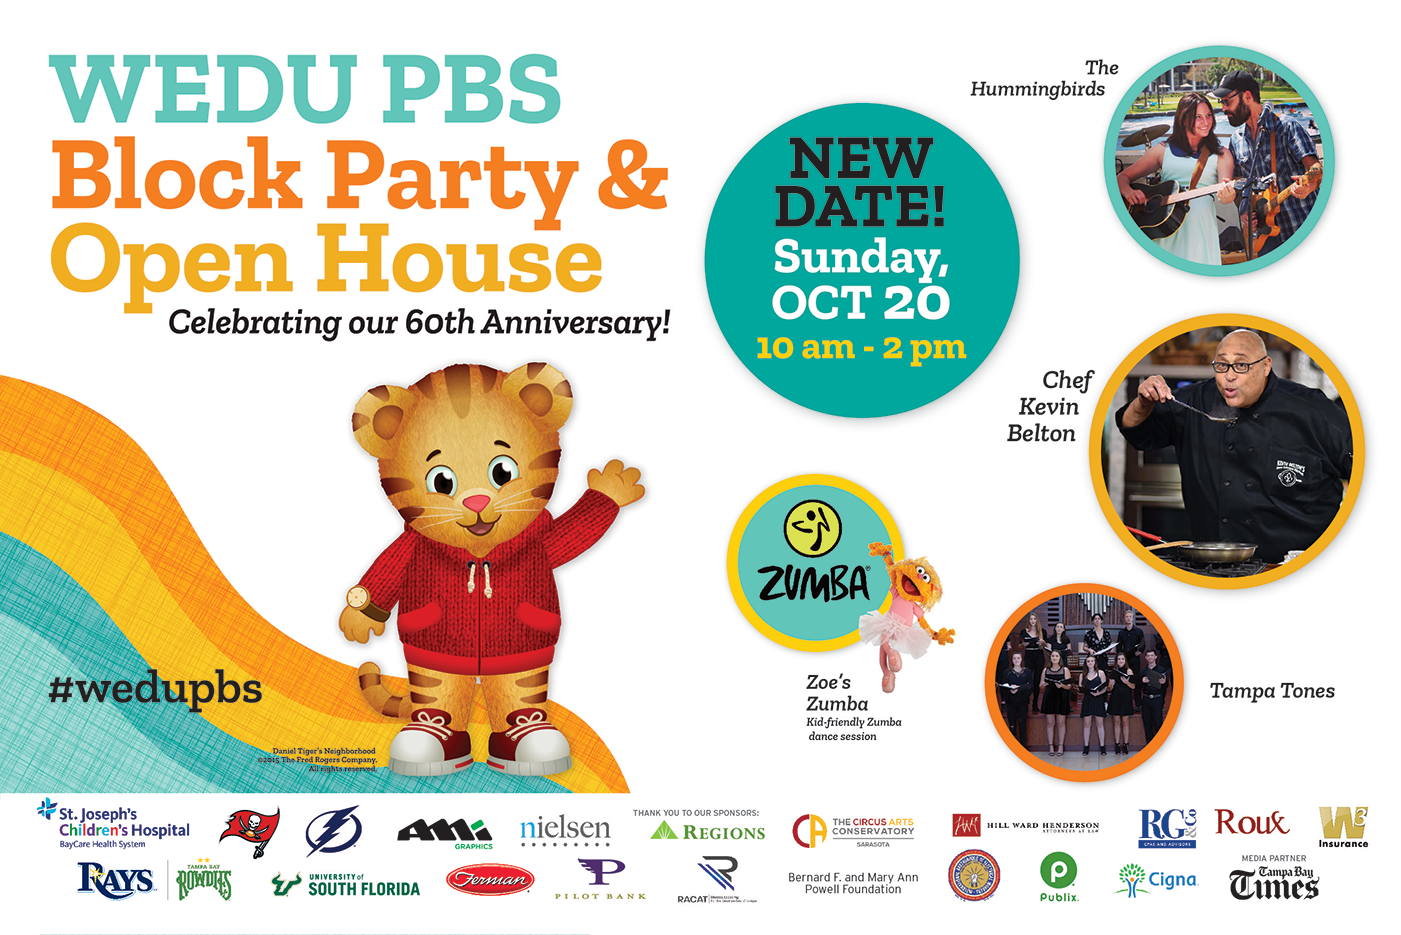 WEDU PBS Block Party & Open House! Celebrating our 60 anniversary!